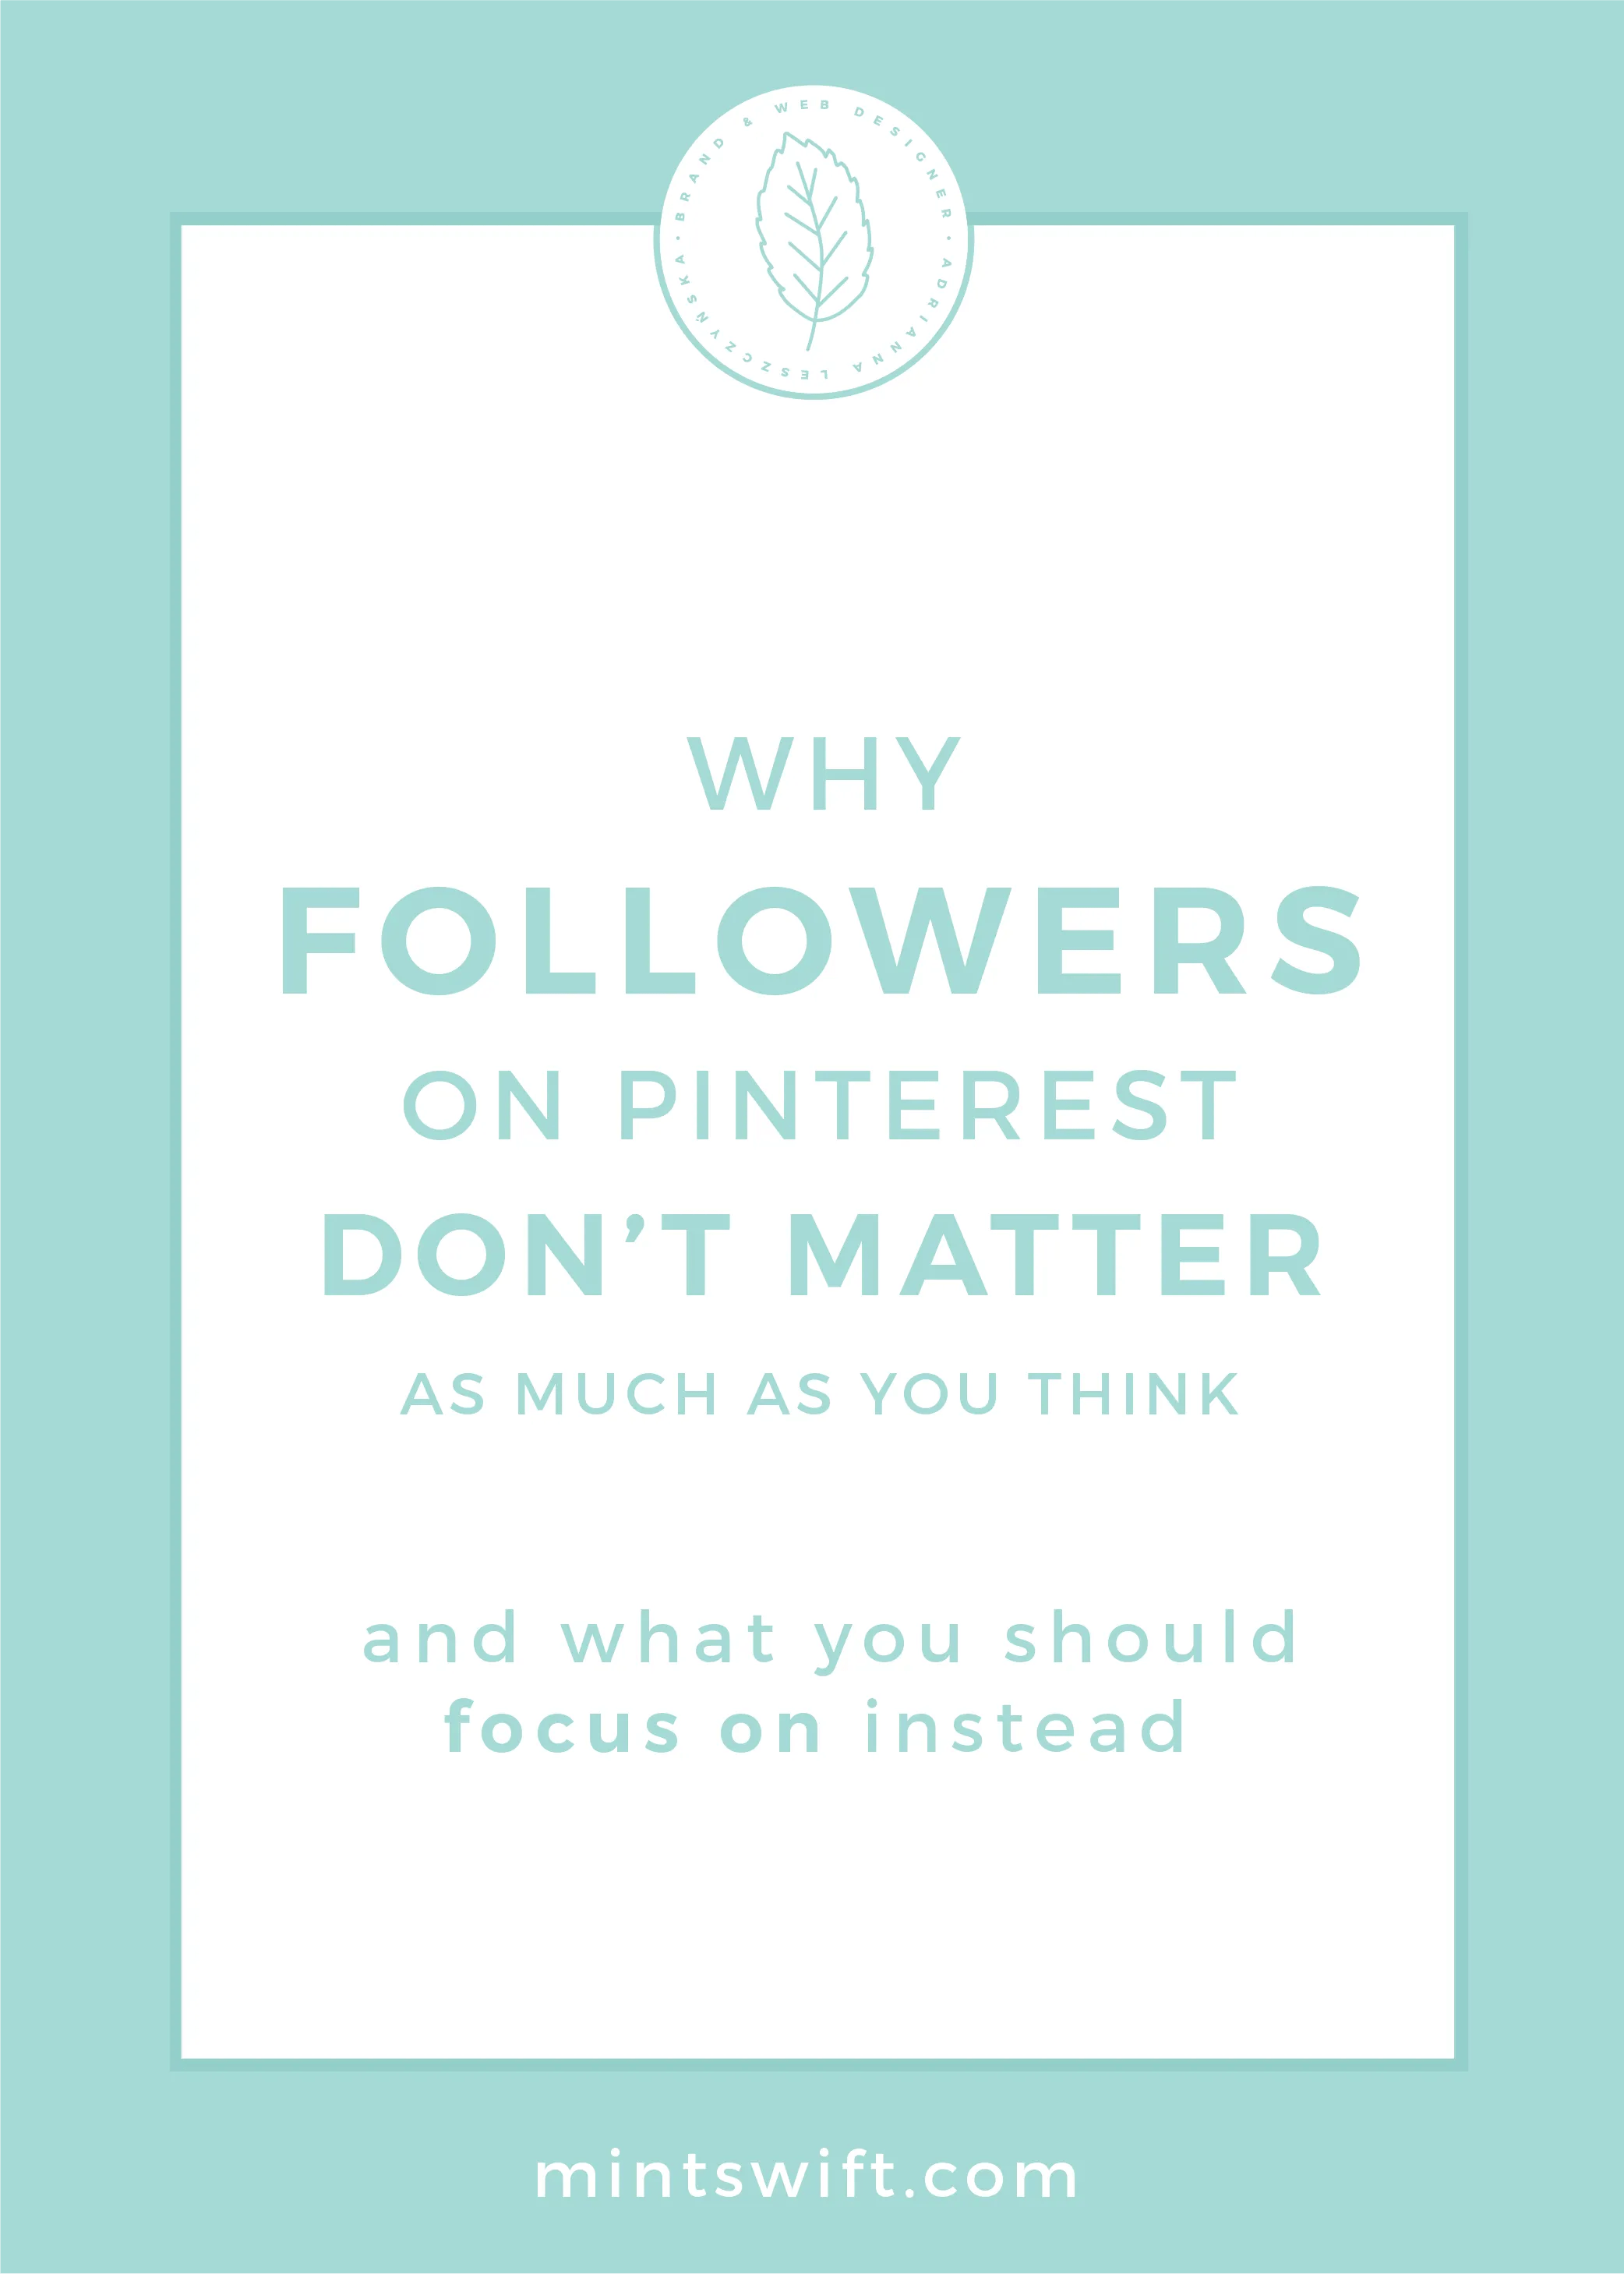 Why Followers on Pinterest Don't Matter as Much as You Think & What You Should Focus on Instead by MintSwift